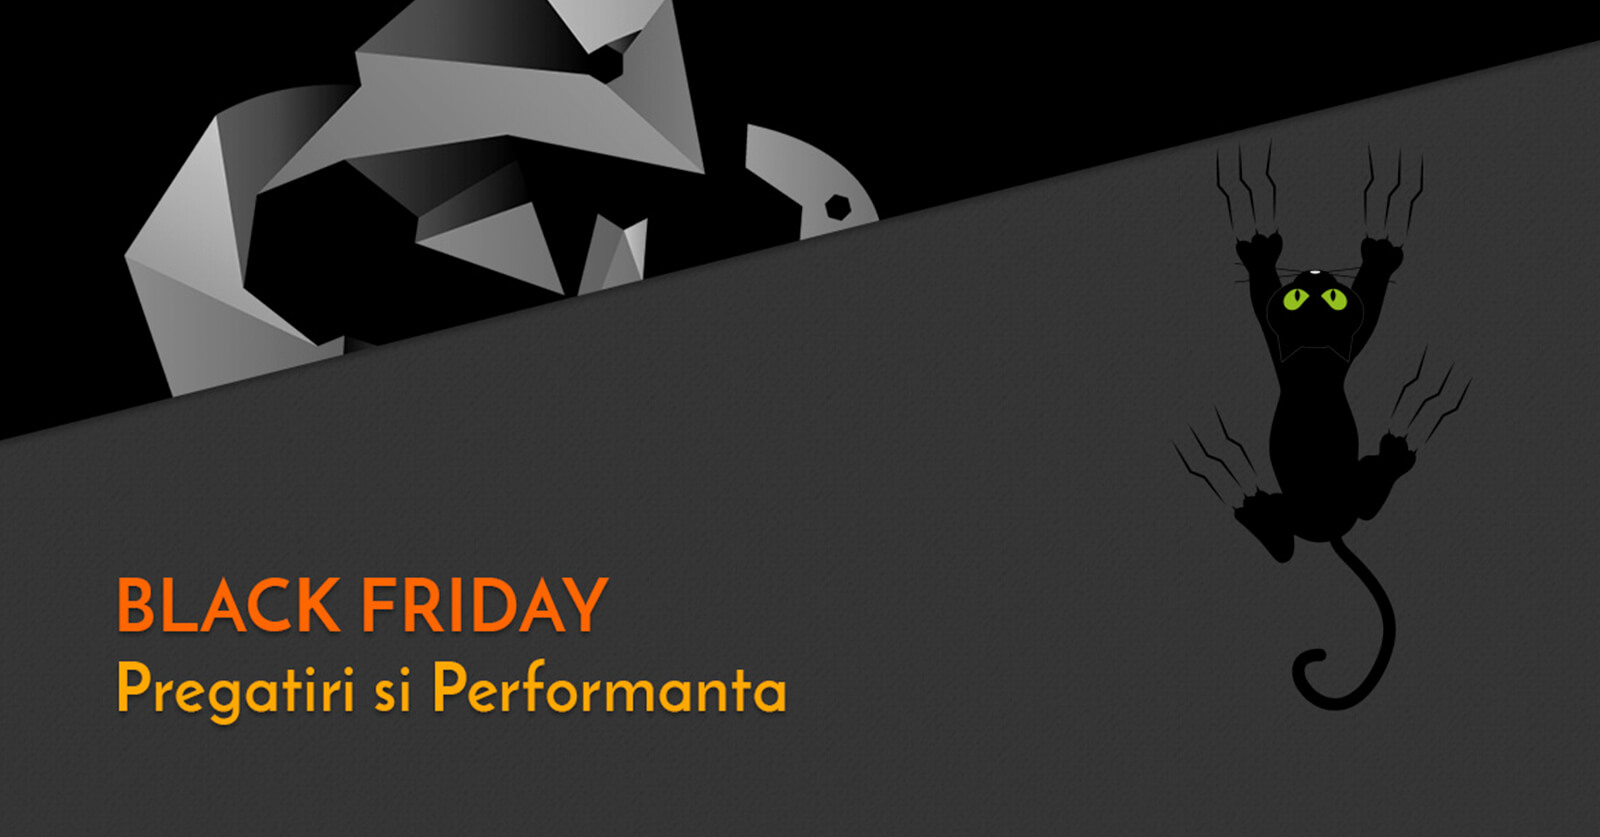 Black Friday pregatiri si performanta Web Design Timisoara Sinners Projects